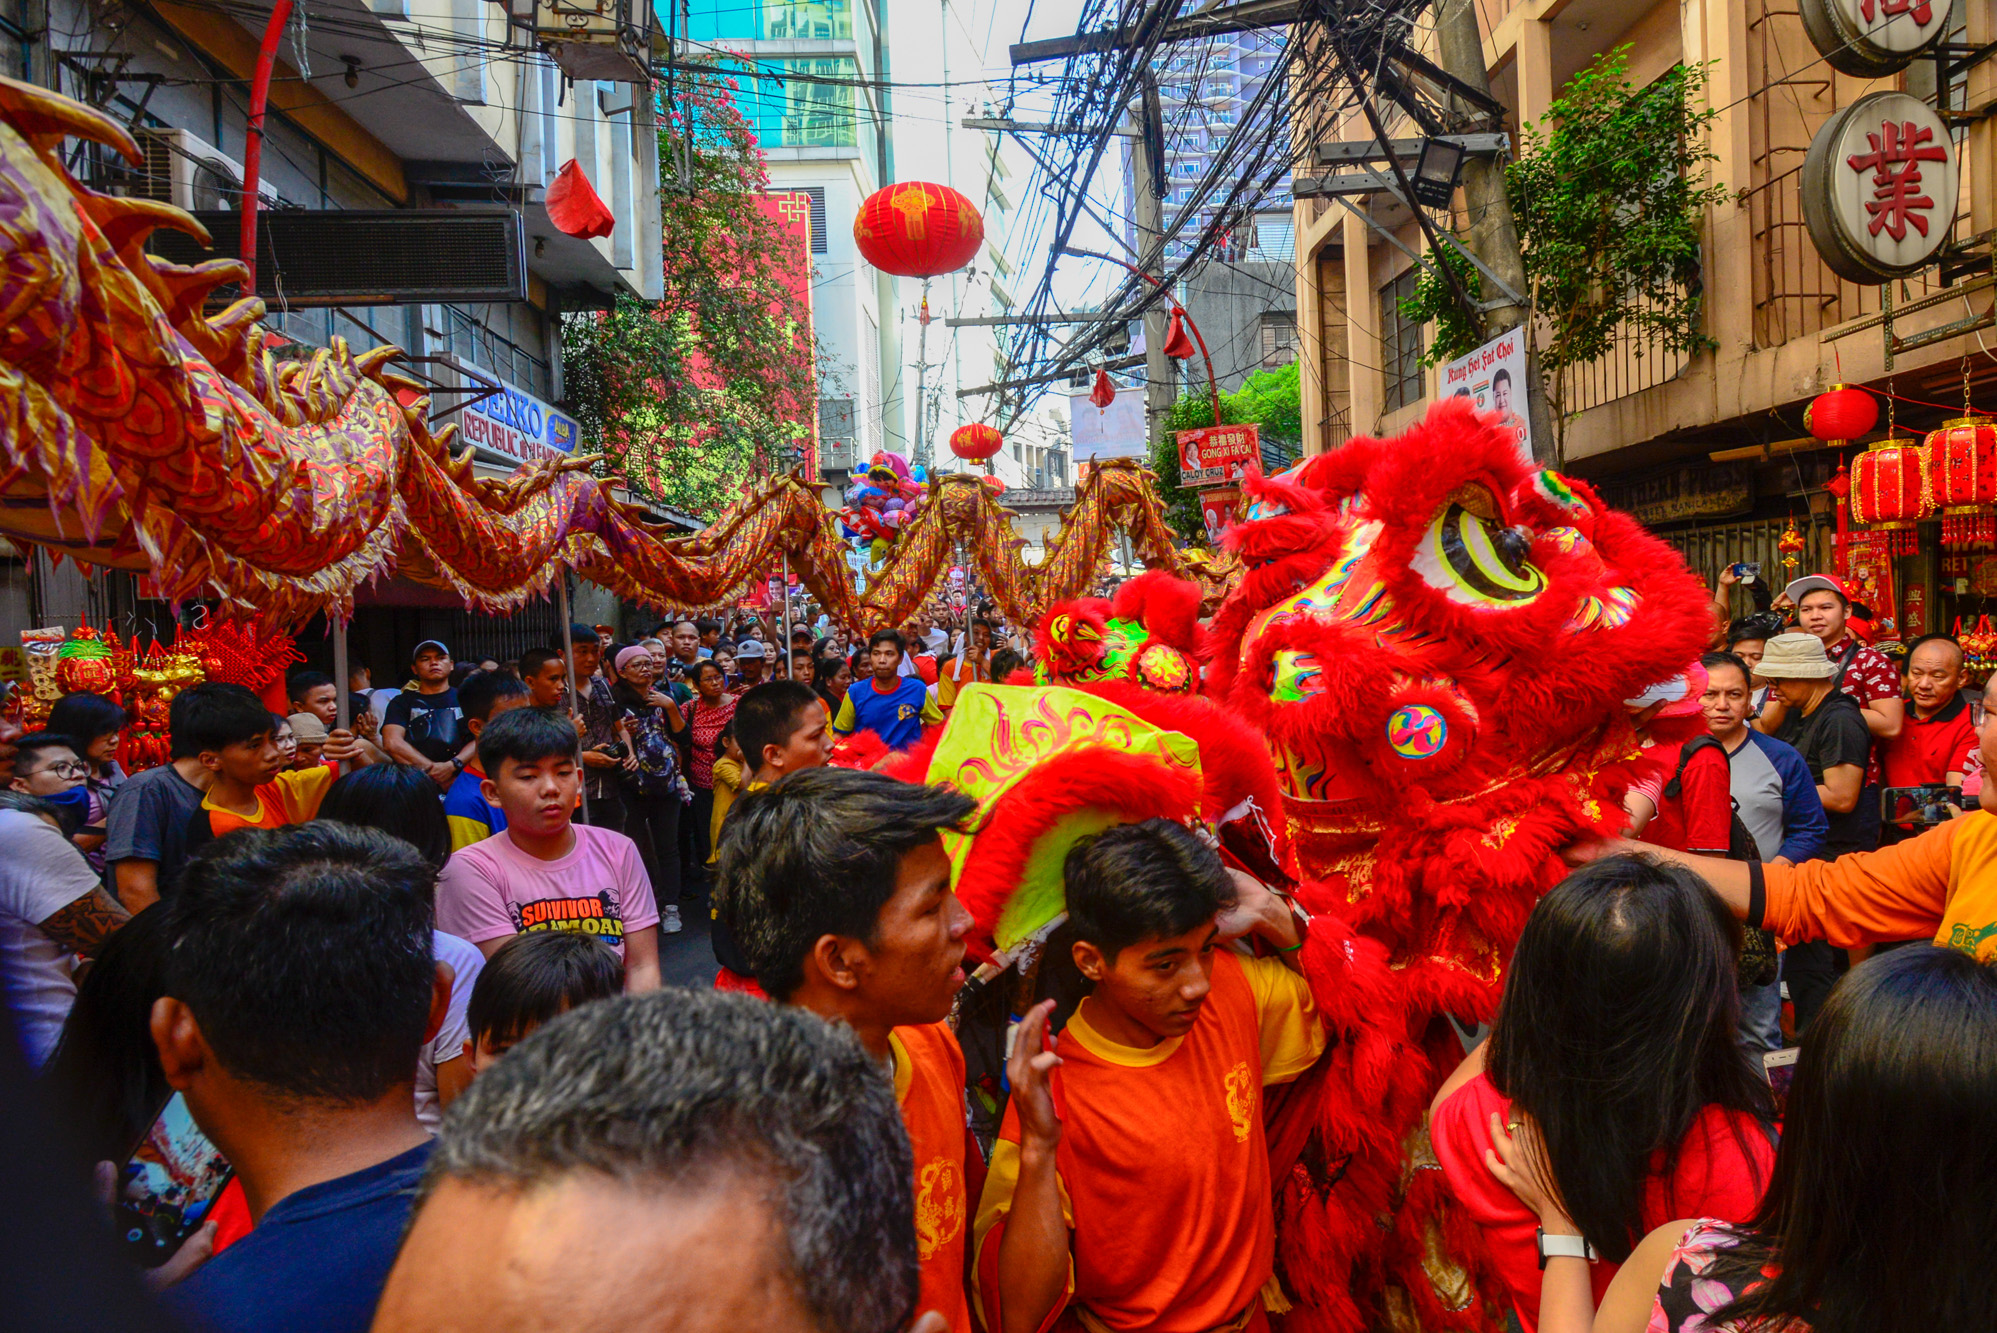 BINONDO. Thousands of people gathered in Binondo, the world's oldest Chinatown, on Tuesday, Feb 5, to witness and take part in the Chinese New Year celebrations. Photo by Maria Tan/Rappler